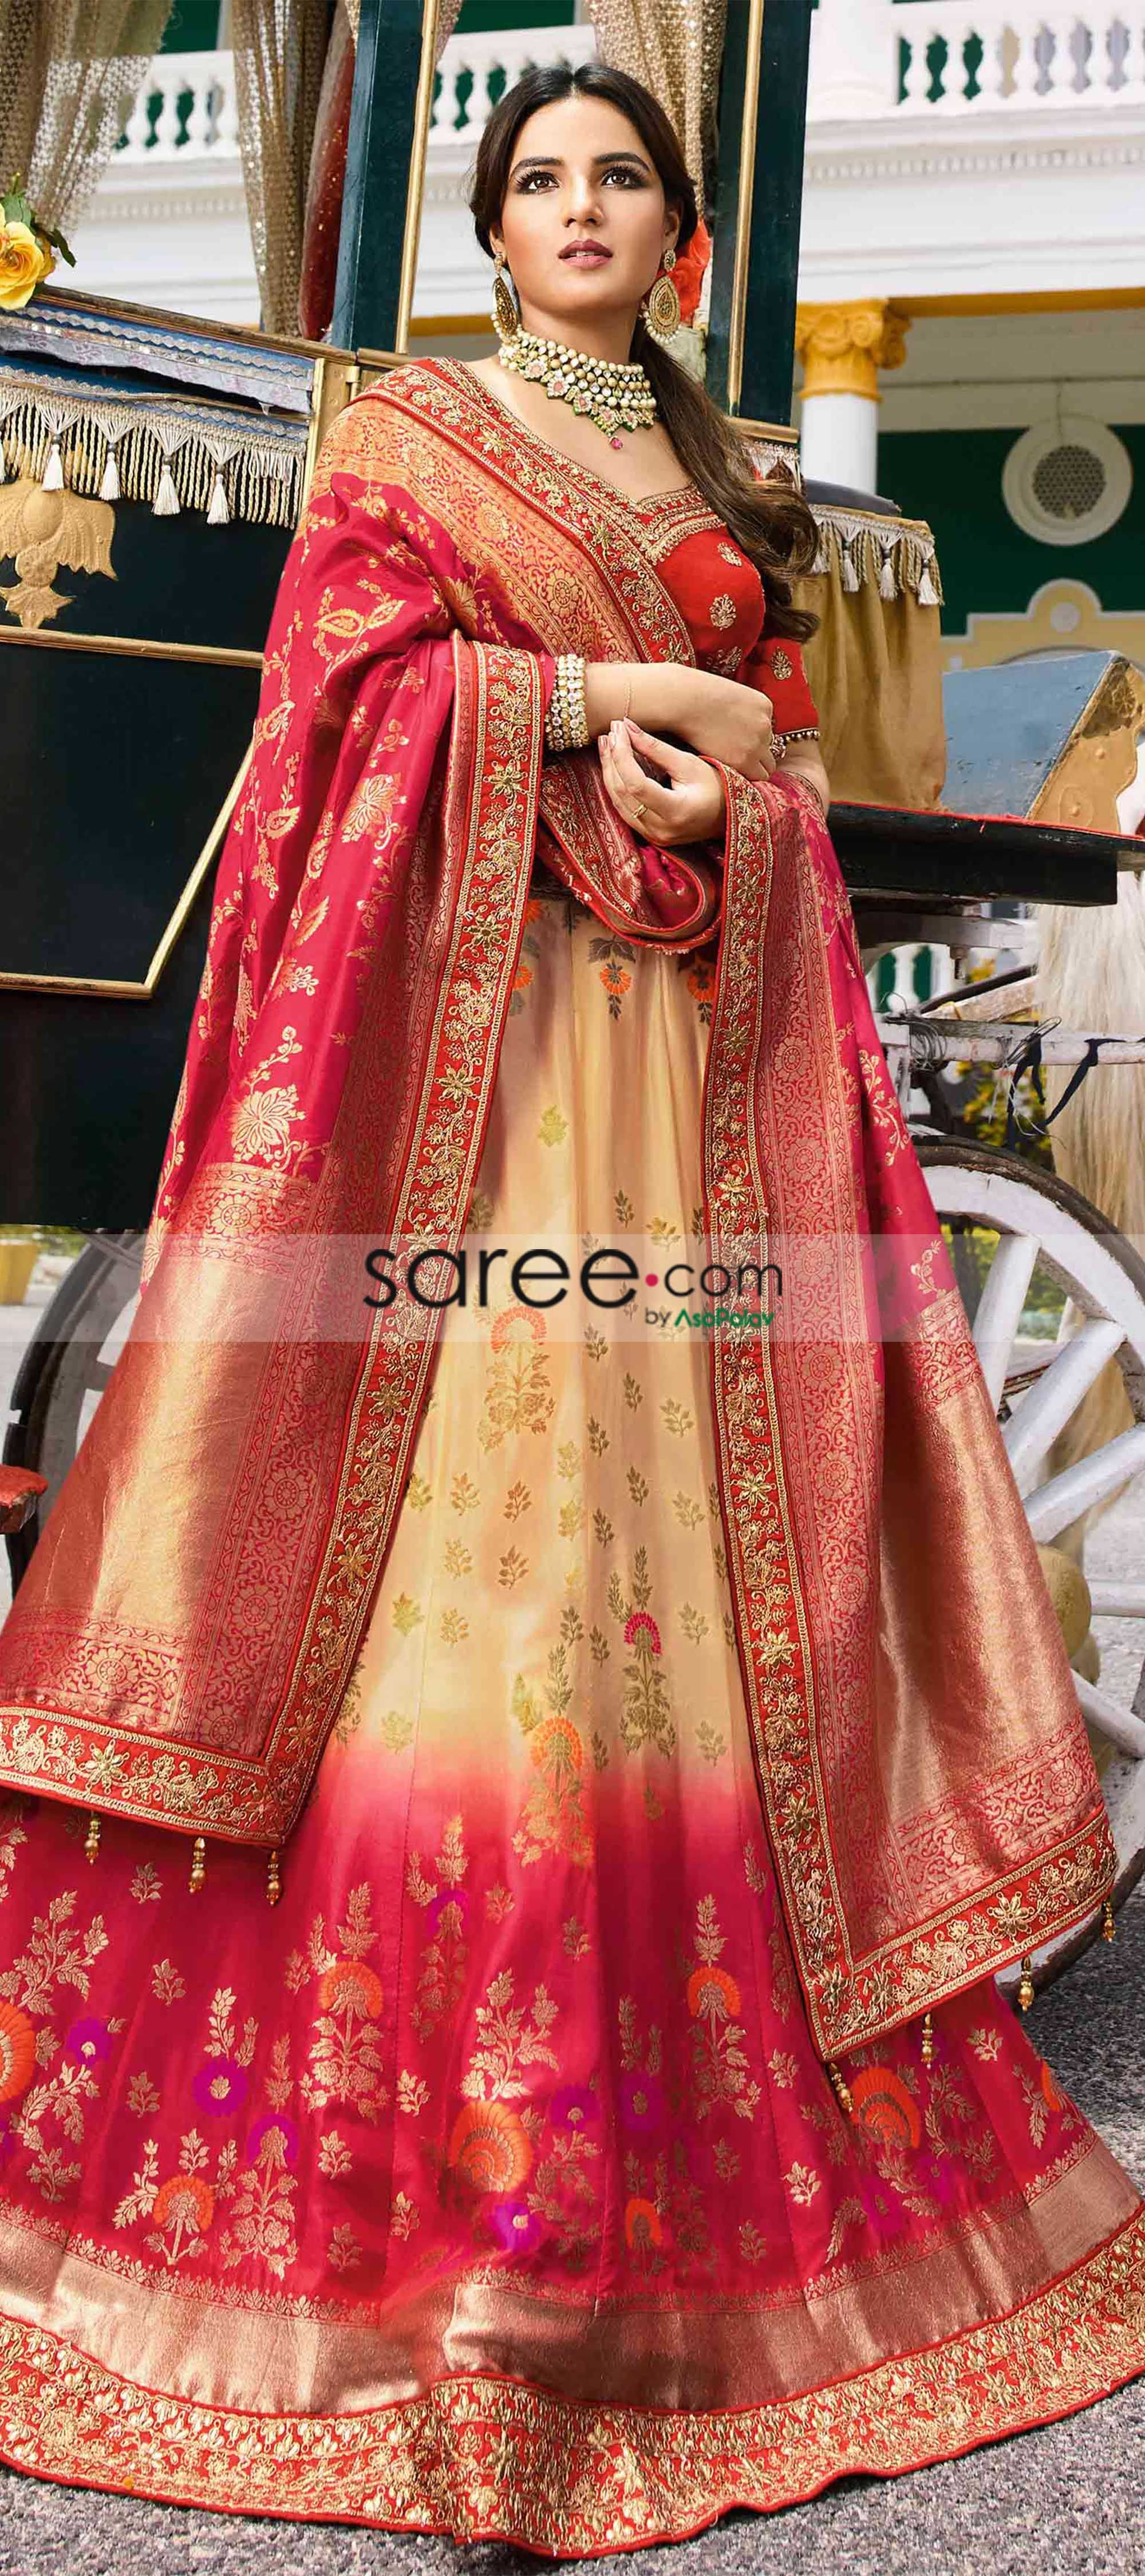 06ec80ae6d Latest and Trendy Ombre Lehenga Choli Design Radiant Lehenga and Blouse  Designs for Ravishing Wedding Guests and Brides